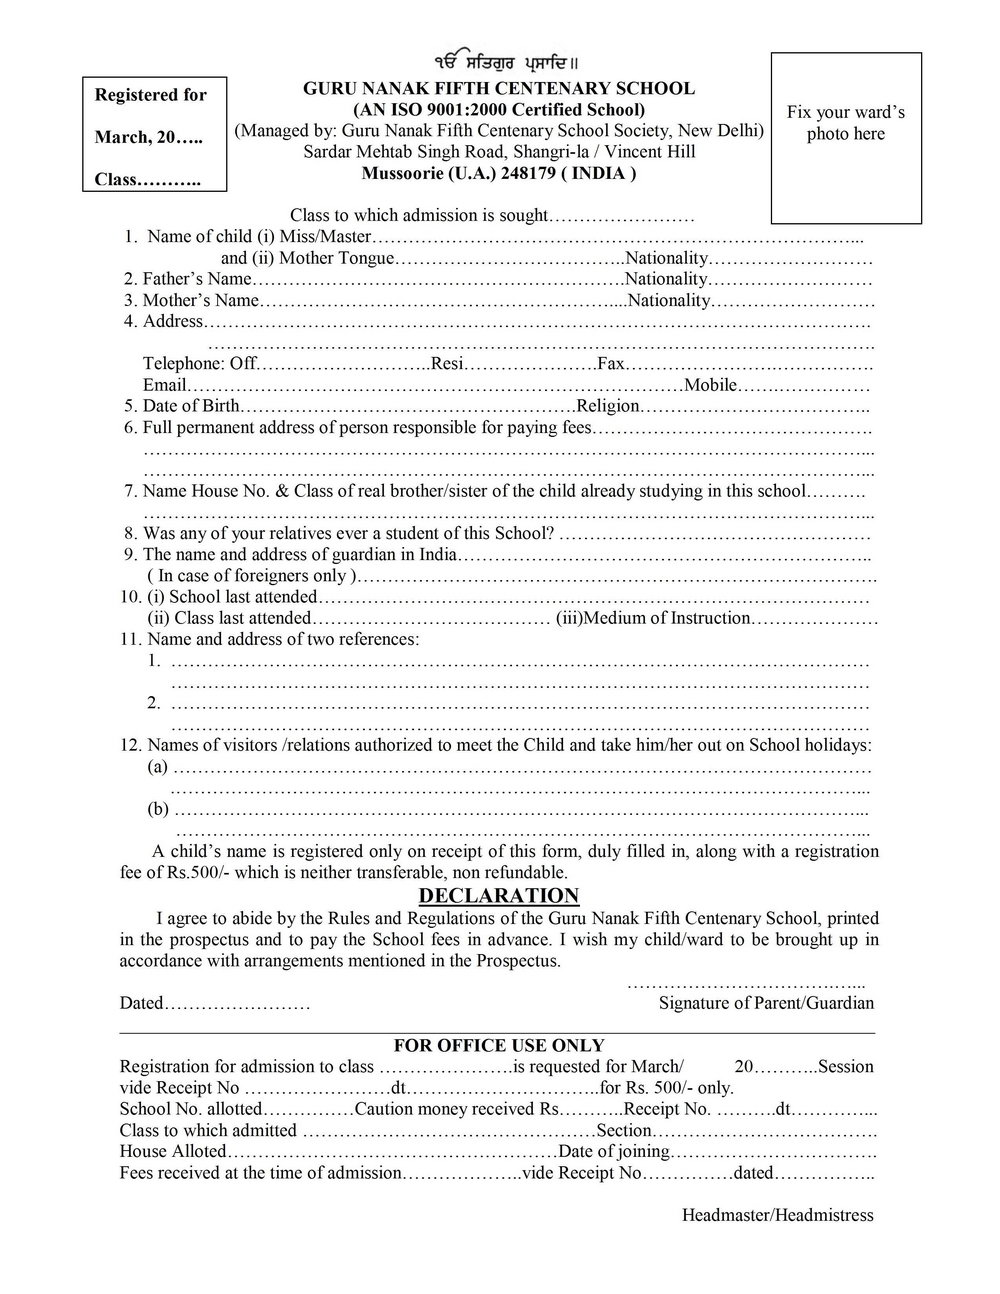 Self Employed Form 1099 Misc